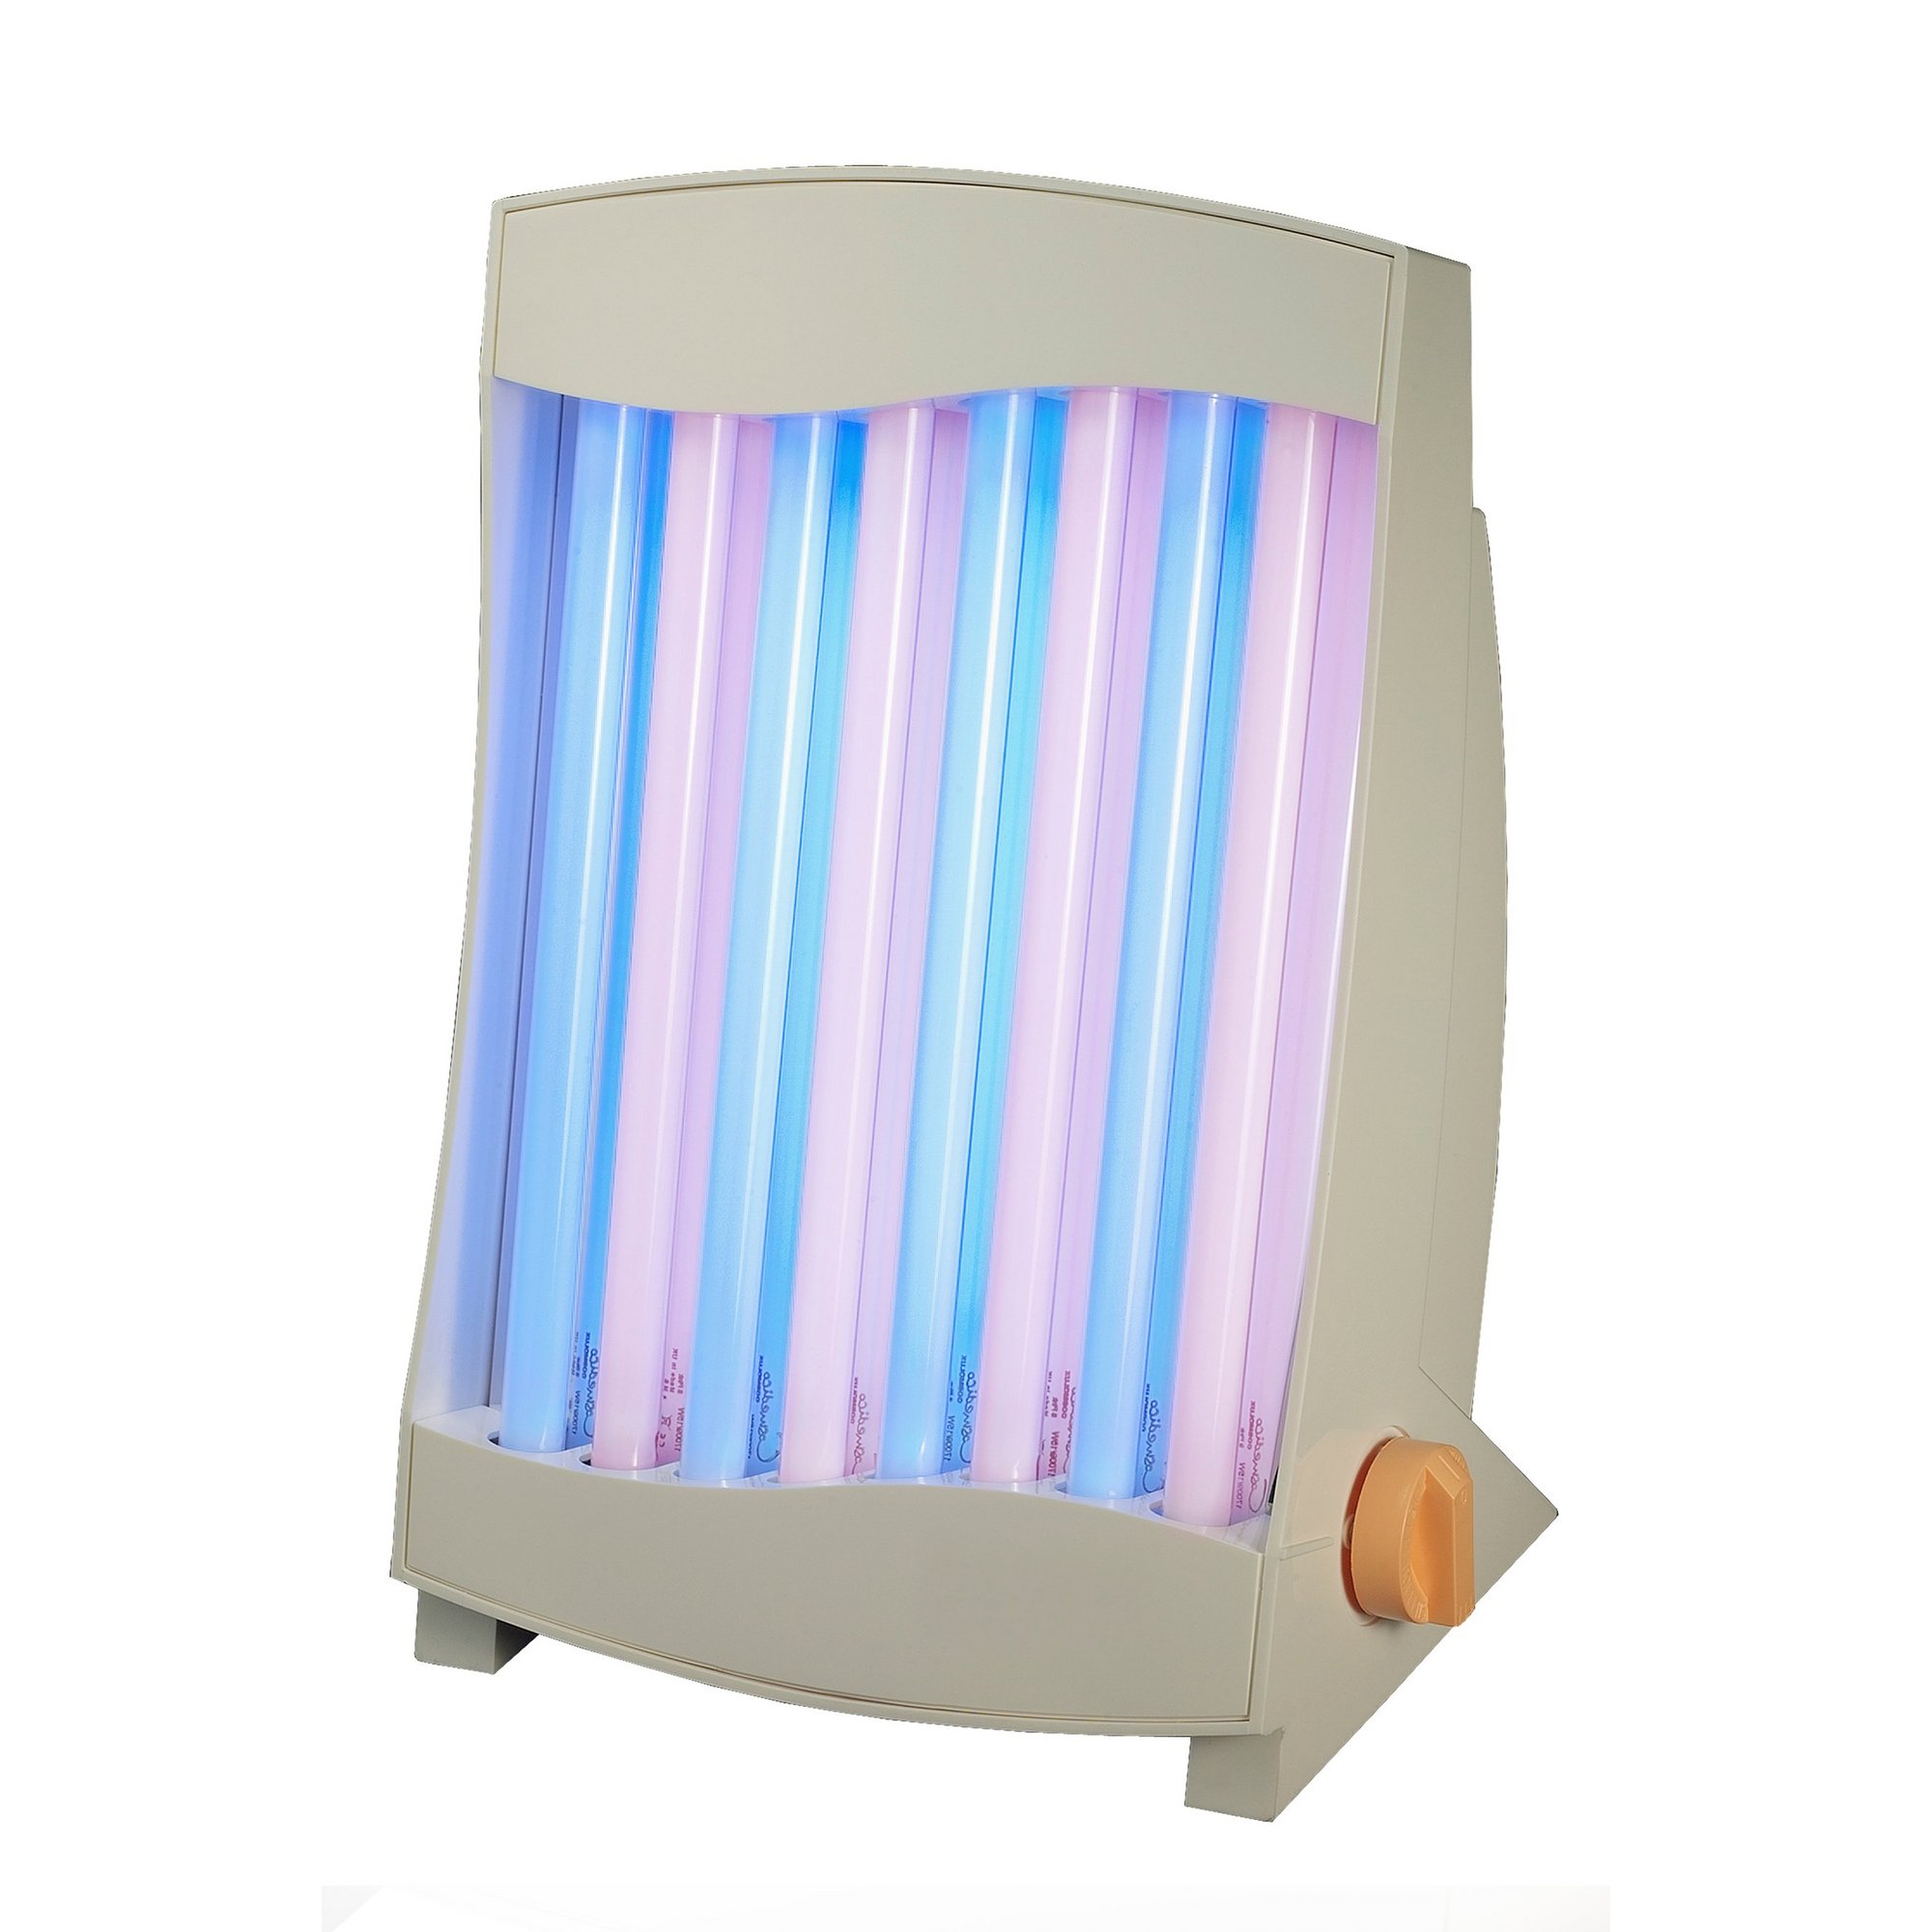 Image of 2-in-1 Luminotherapy Facial Tanner - 8 UV-A Tubes